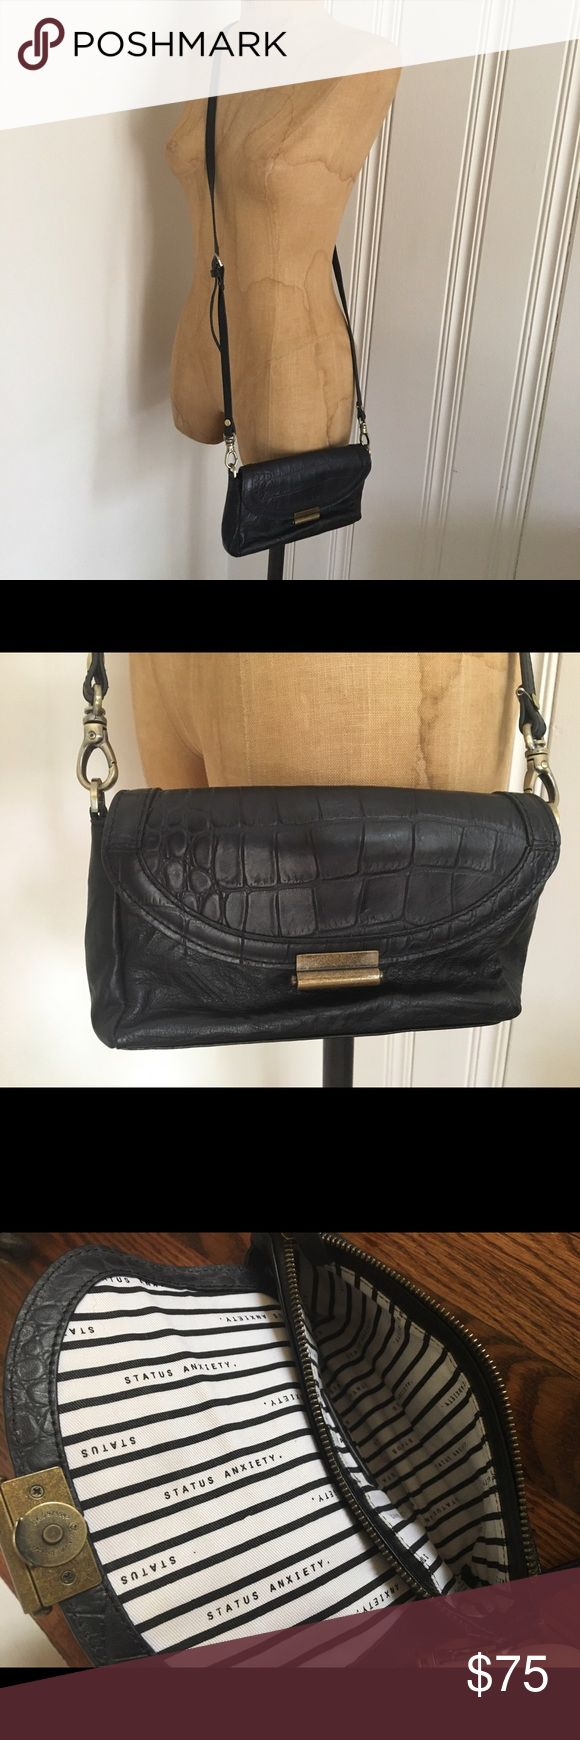 Status Anxiety black leather crossbody bag 'I See You Baby' bag. Real leather. Got it about 3 years ago. Still available on their website. Worn a few times. A friend yanked on the strap and one of the rivets (?) popped out 😔 Should be repairable. I never use it b/c I have a child and little bags just don't work for me anymore. Status Anxiety Bags Crossbody Bags